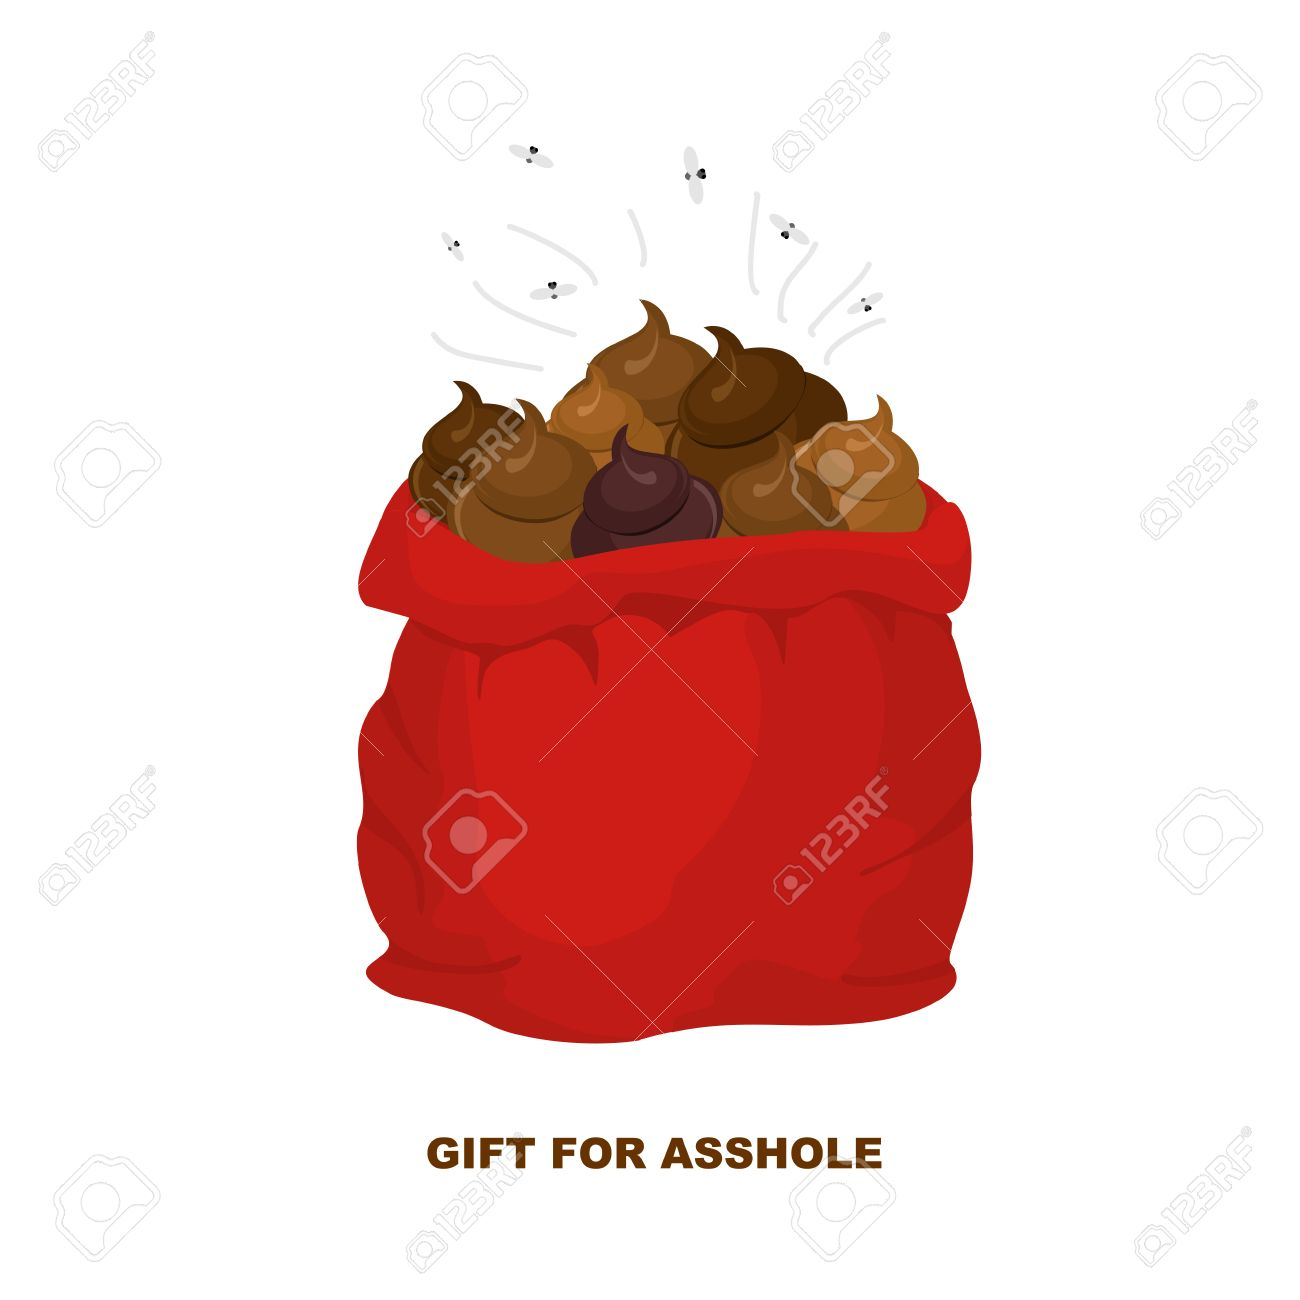 Christmas Gifts For Bad People. Santa Claus With Bag Of Shit ...